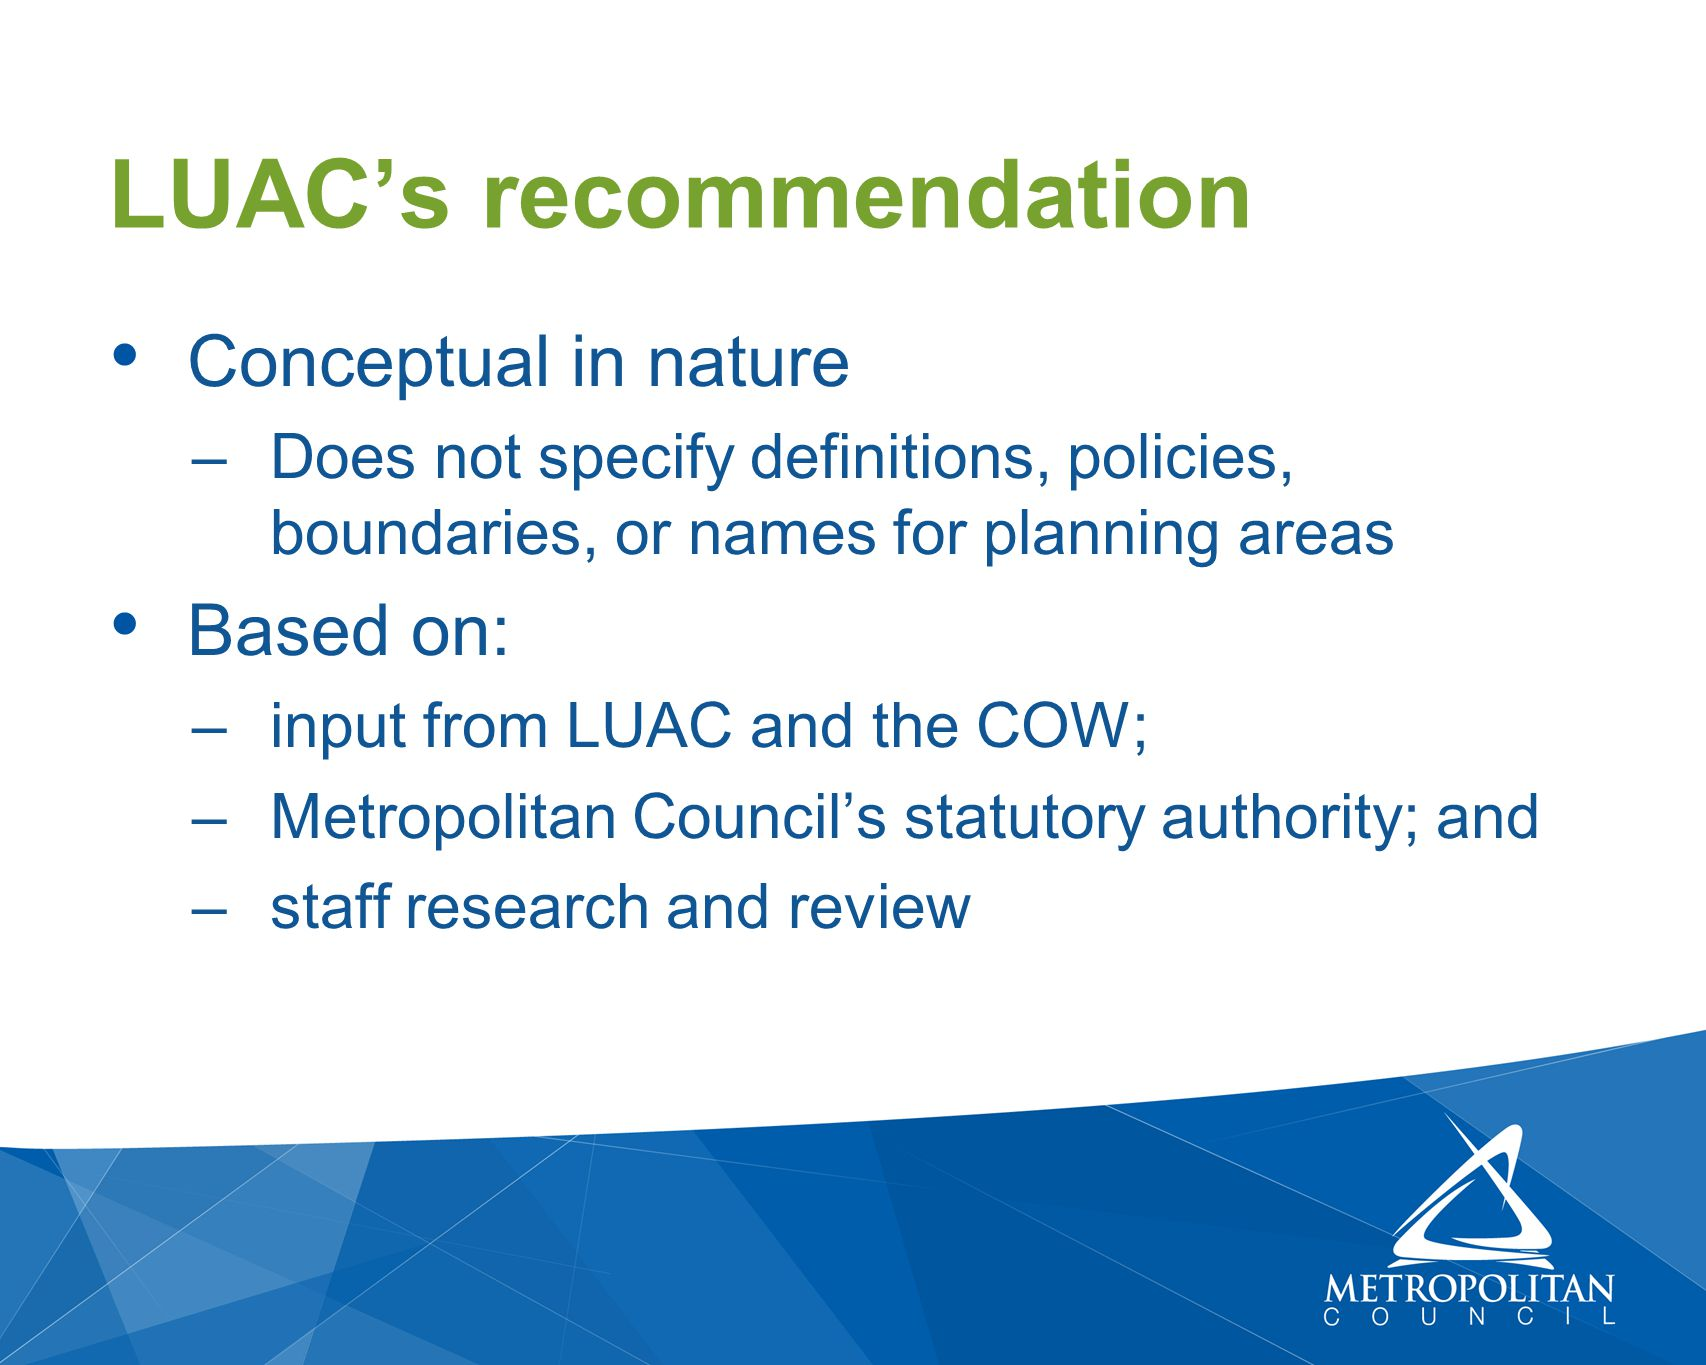 Conceptual in nature –Does not specify definitions, policies, boundaries, or names for planning areas Based on: –input from LUAC and the COW; –Metropolitan Council's statutory authority; and –staff research and review LUAC's recommendation